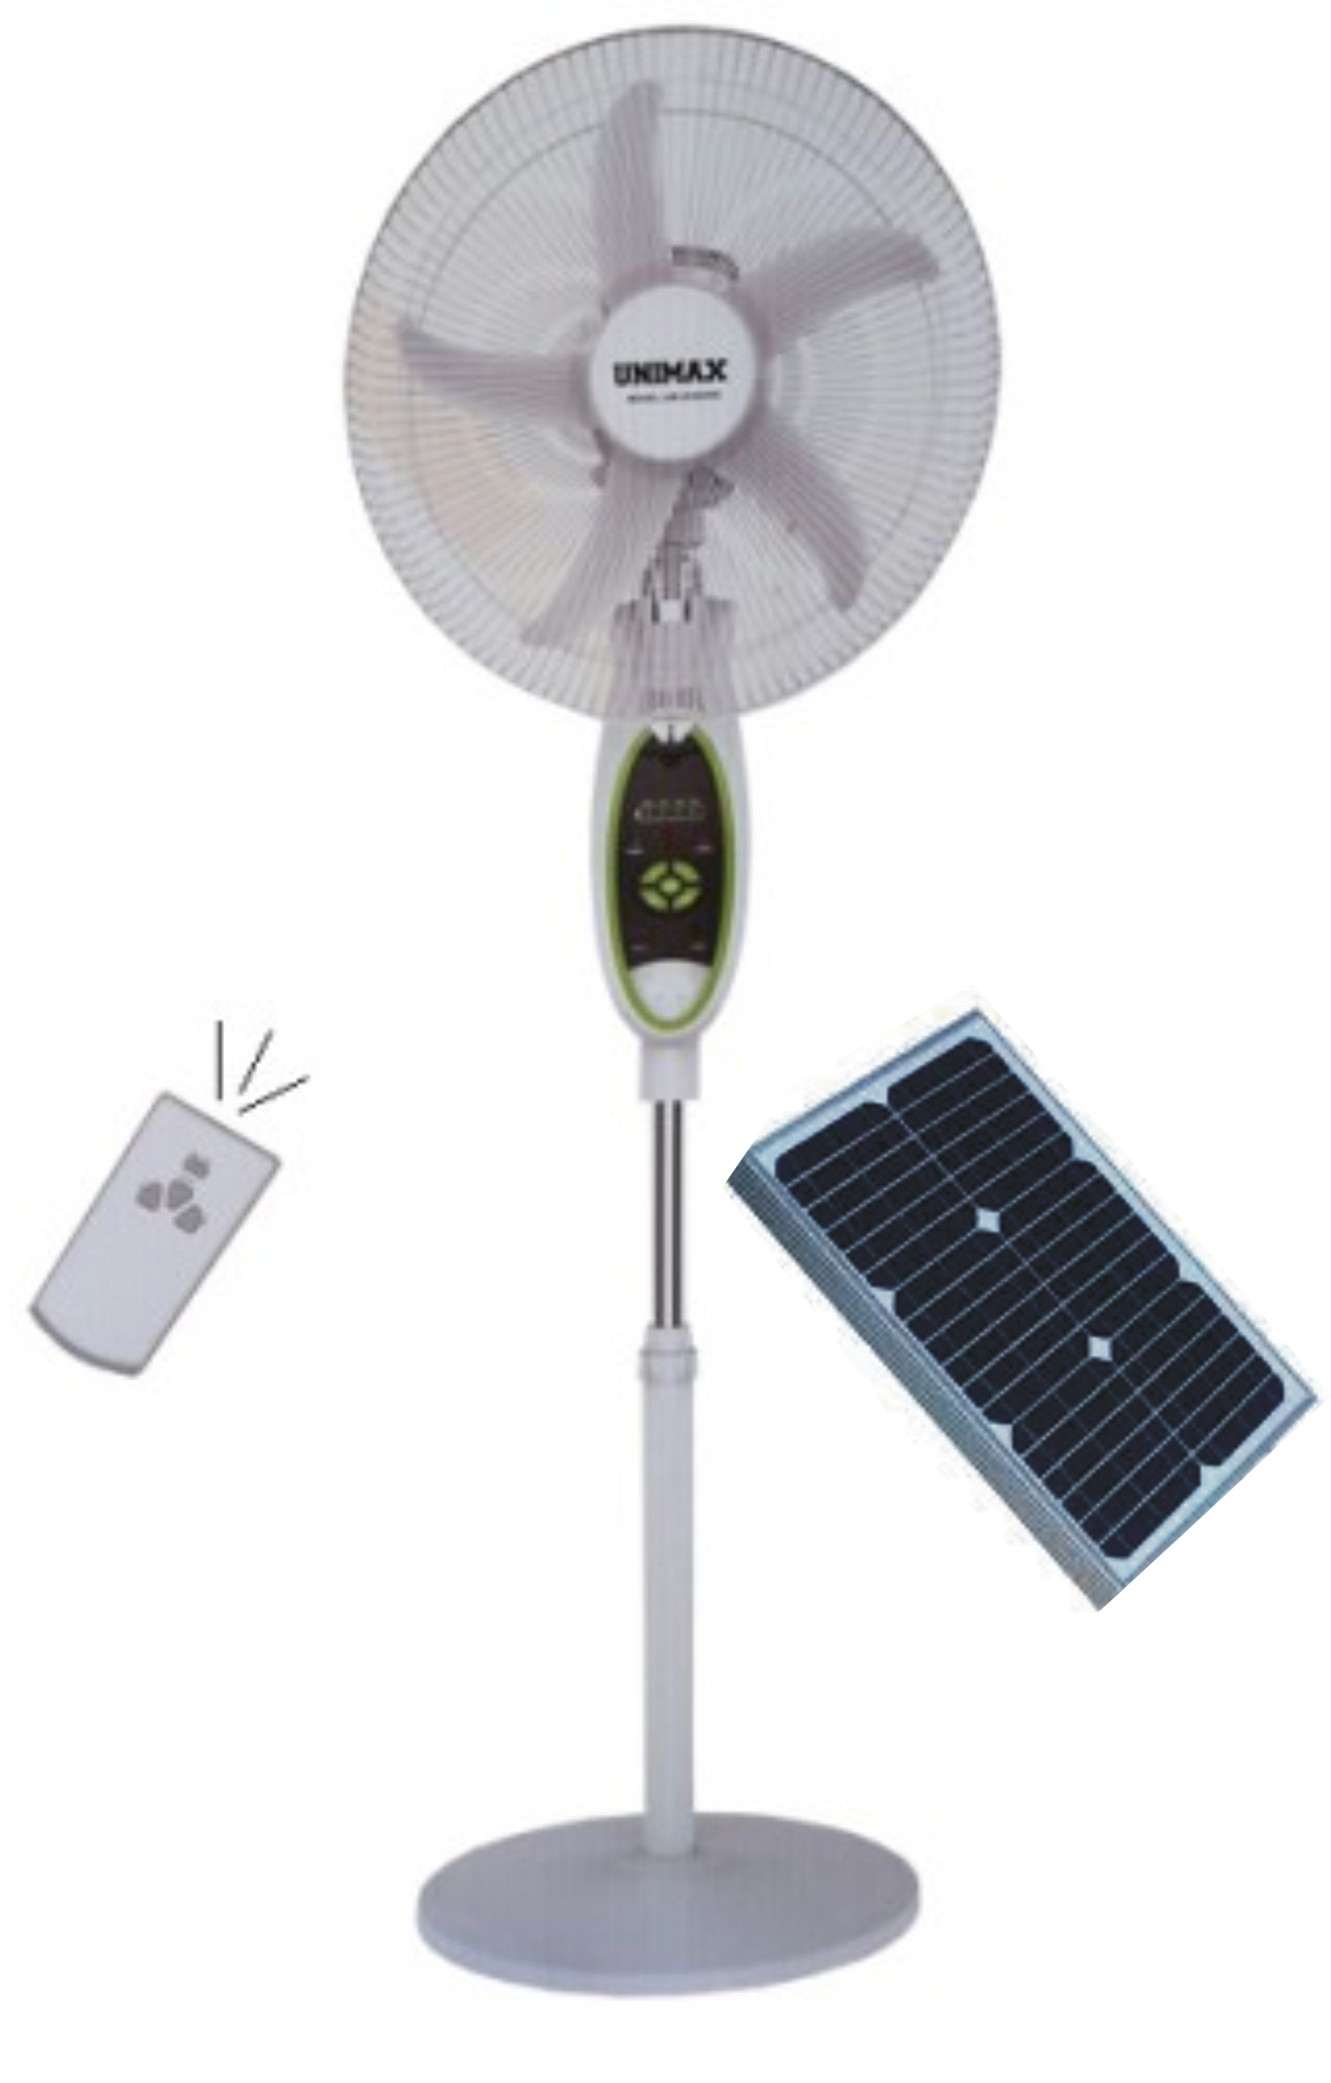 Solarfan Jpeg Bf E A D A Ebfbcd Da E on Stand Up Fans With Remote Control